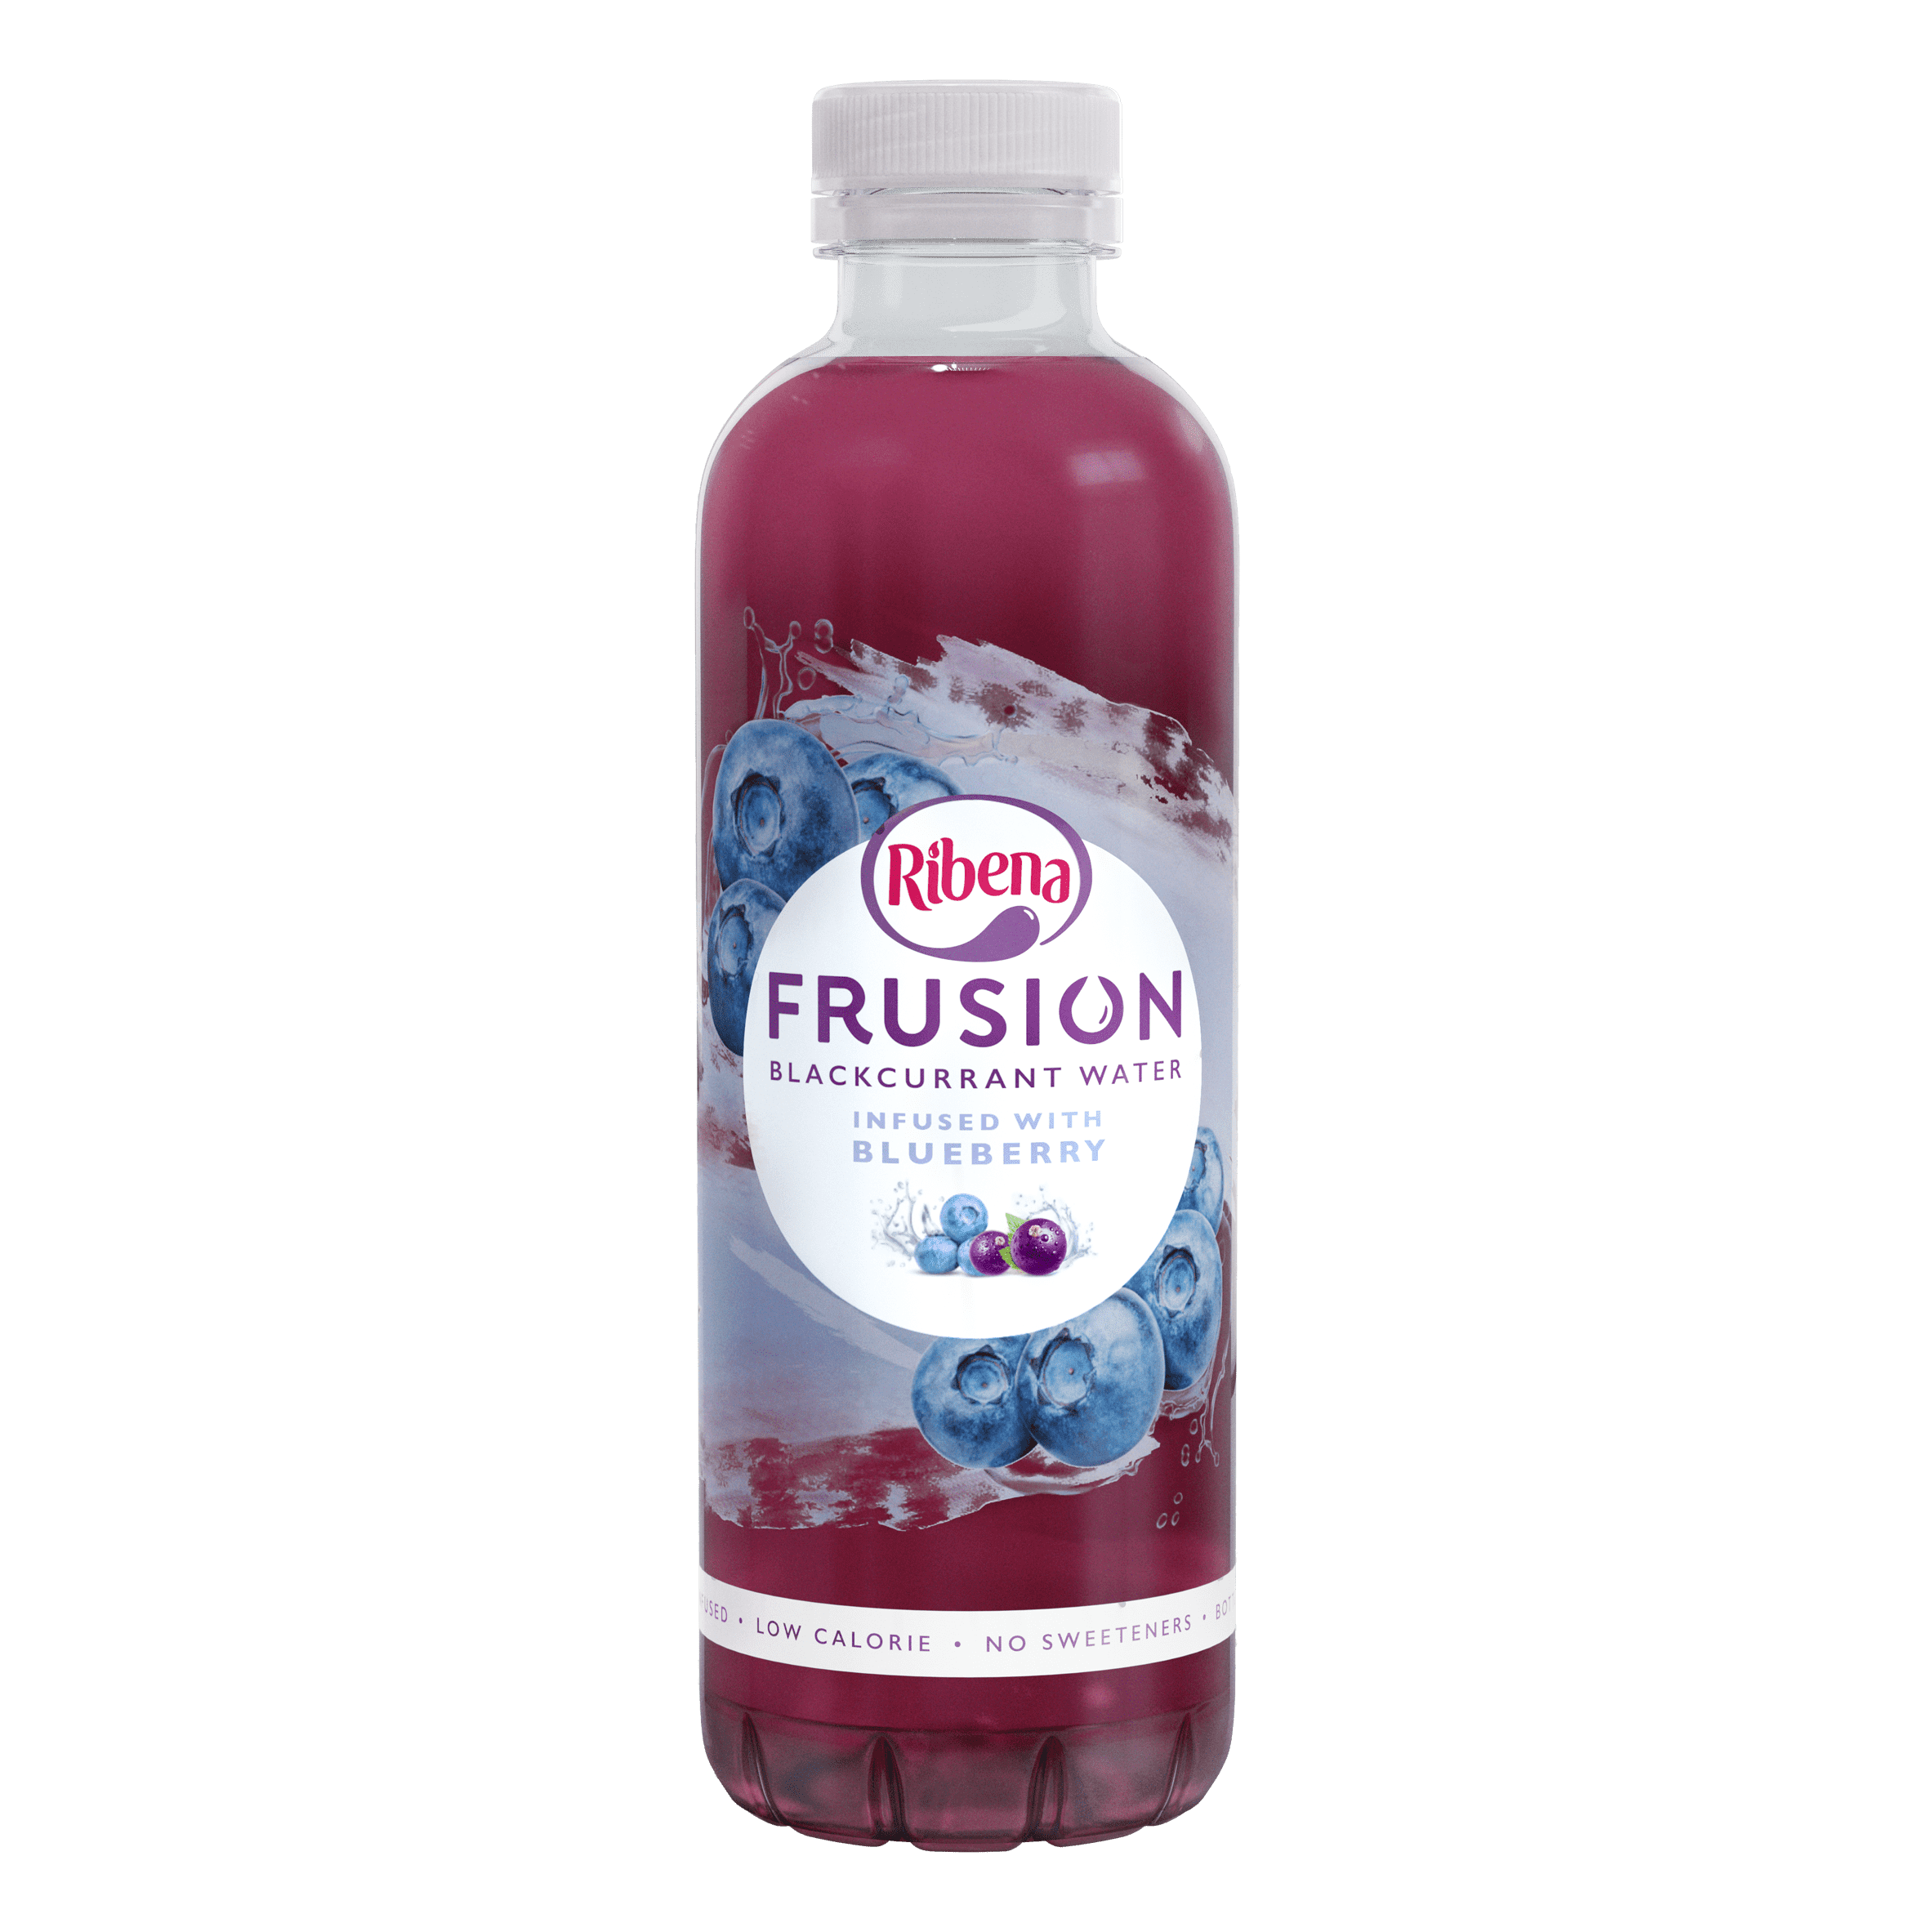 ribena - frusion blueberry 420ml